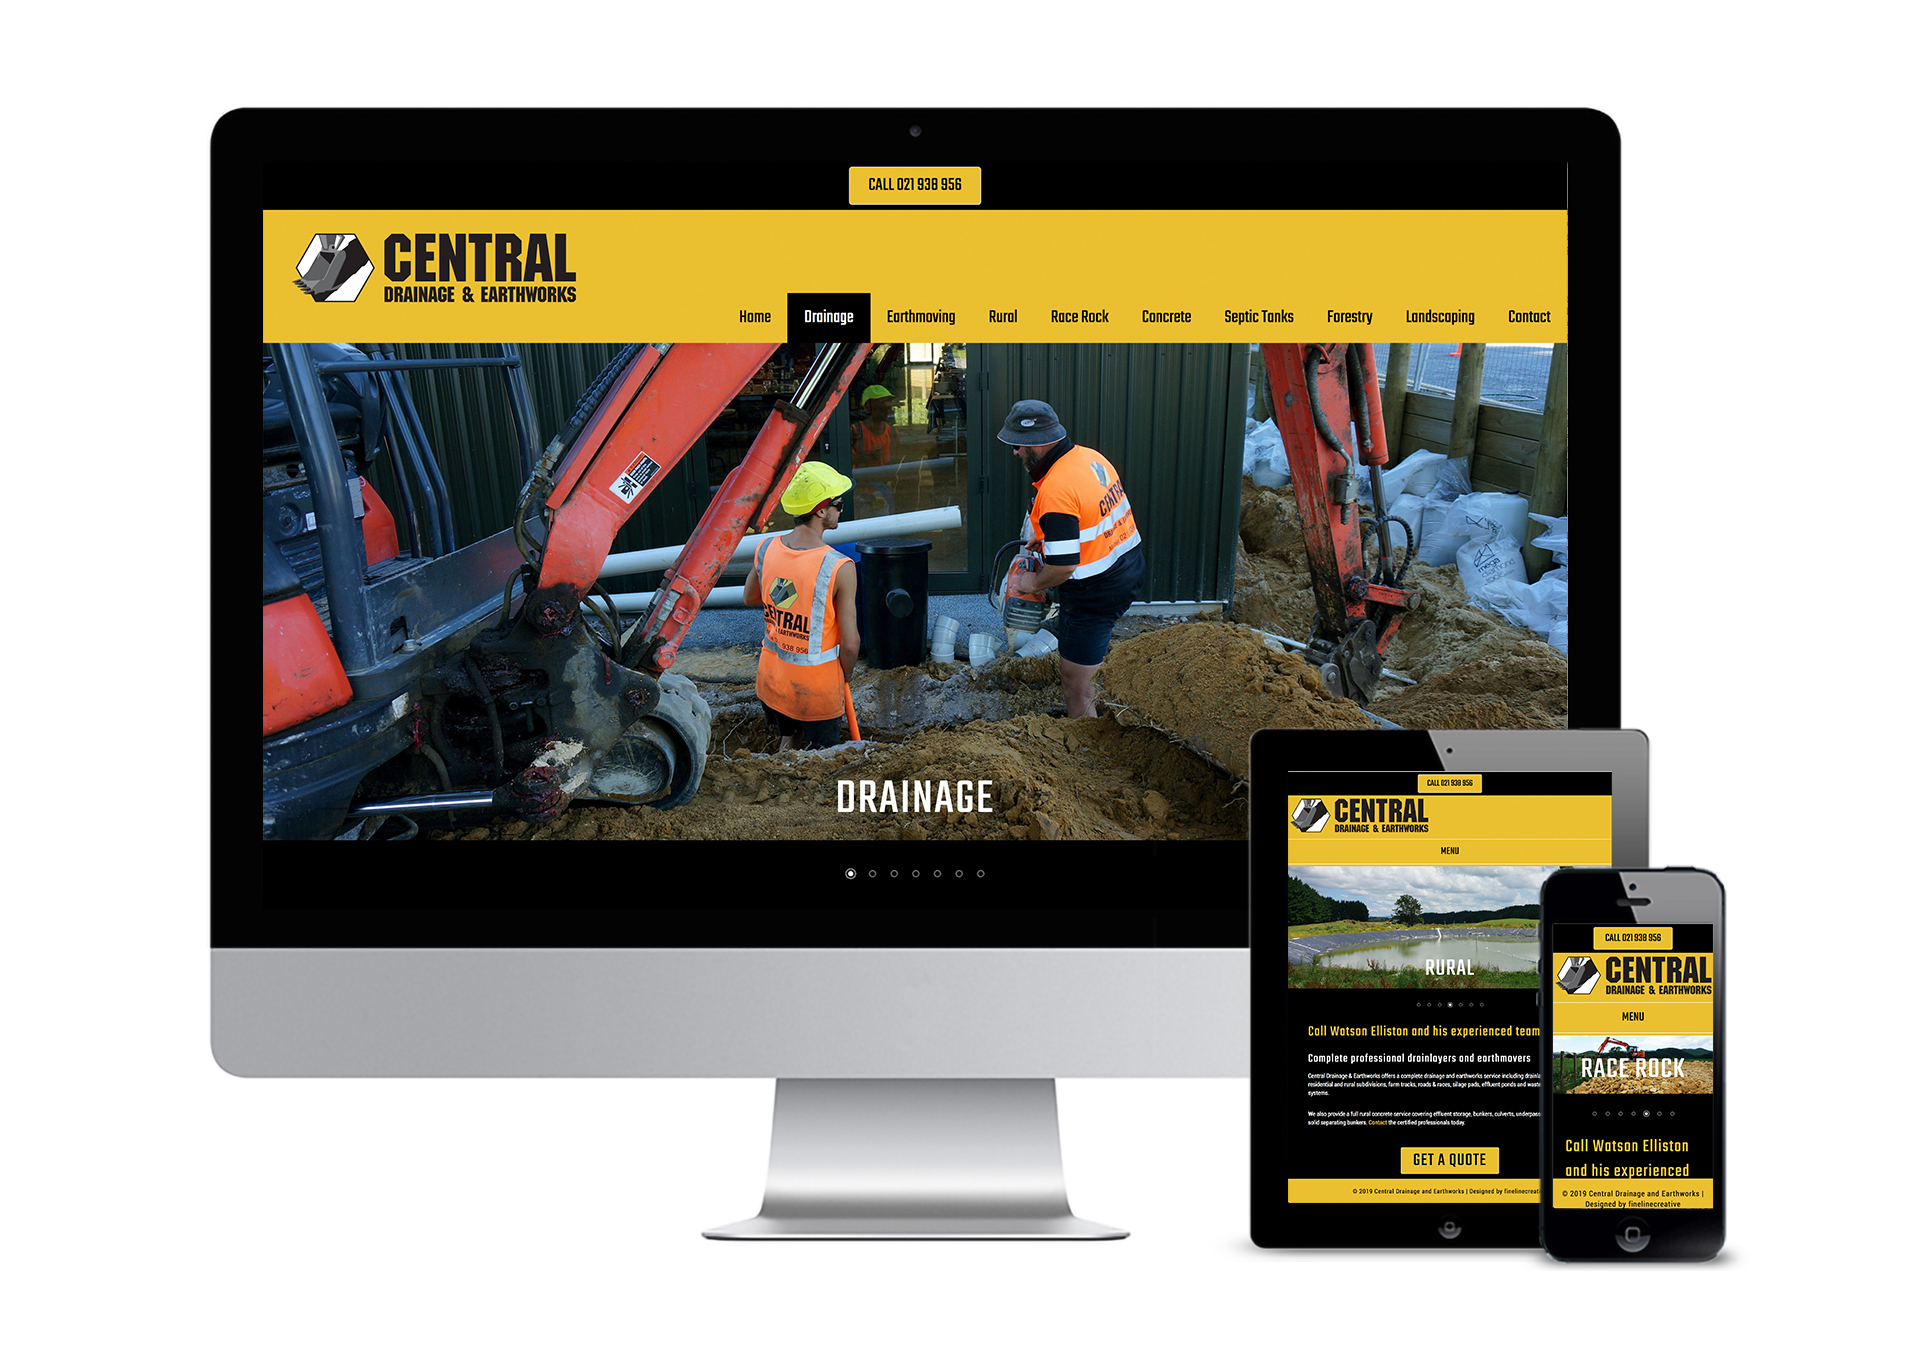 Central-drainage-website.jpg